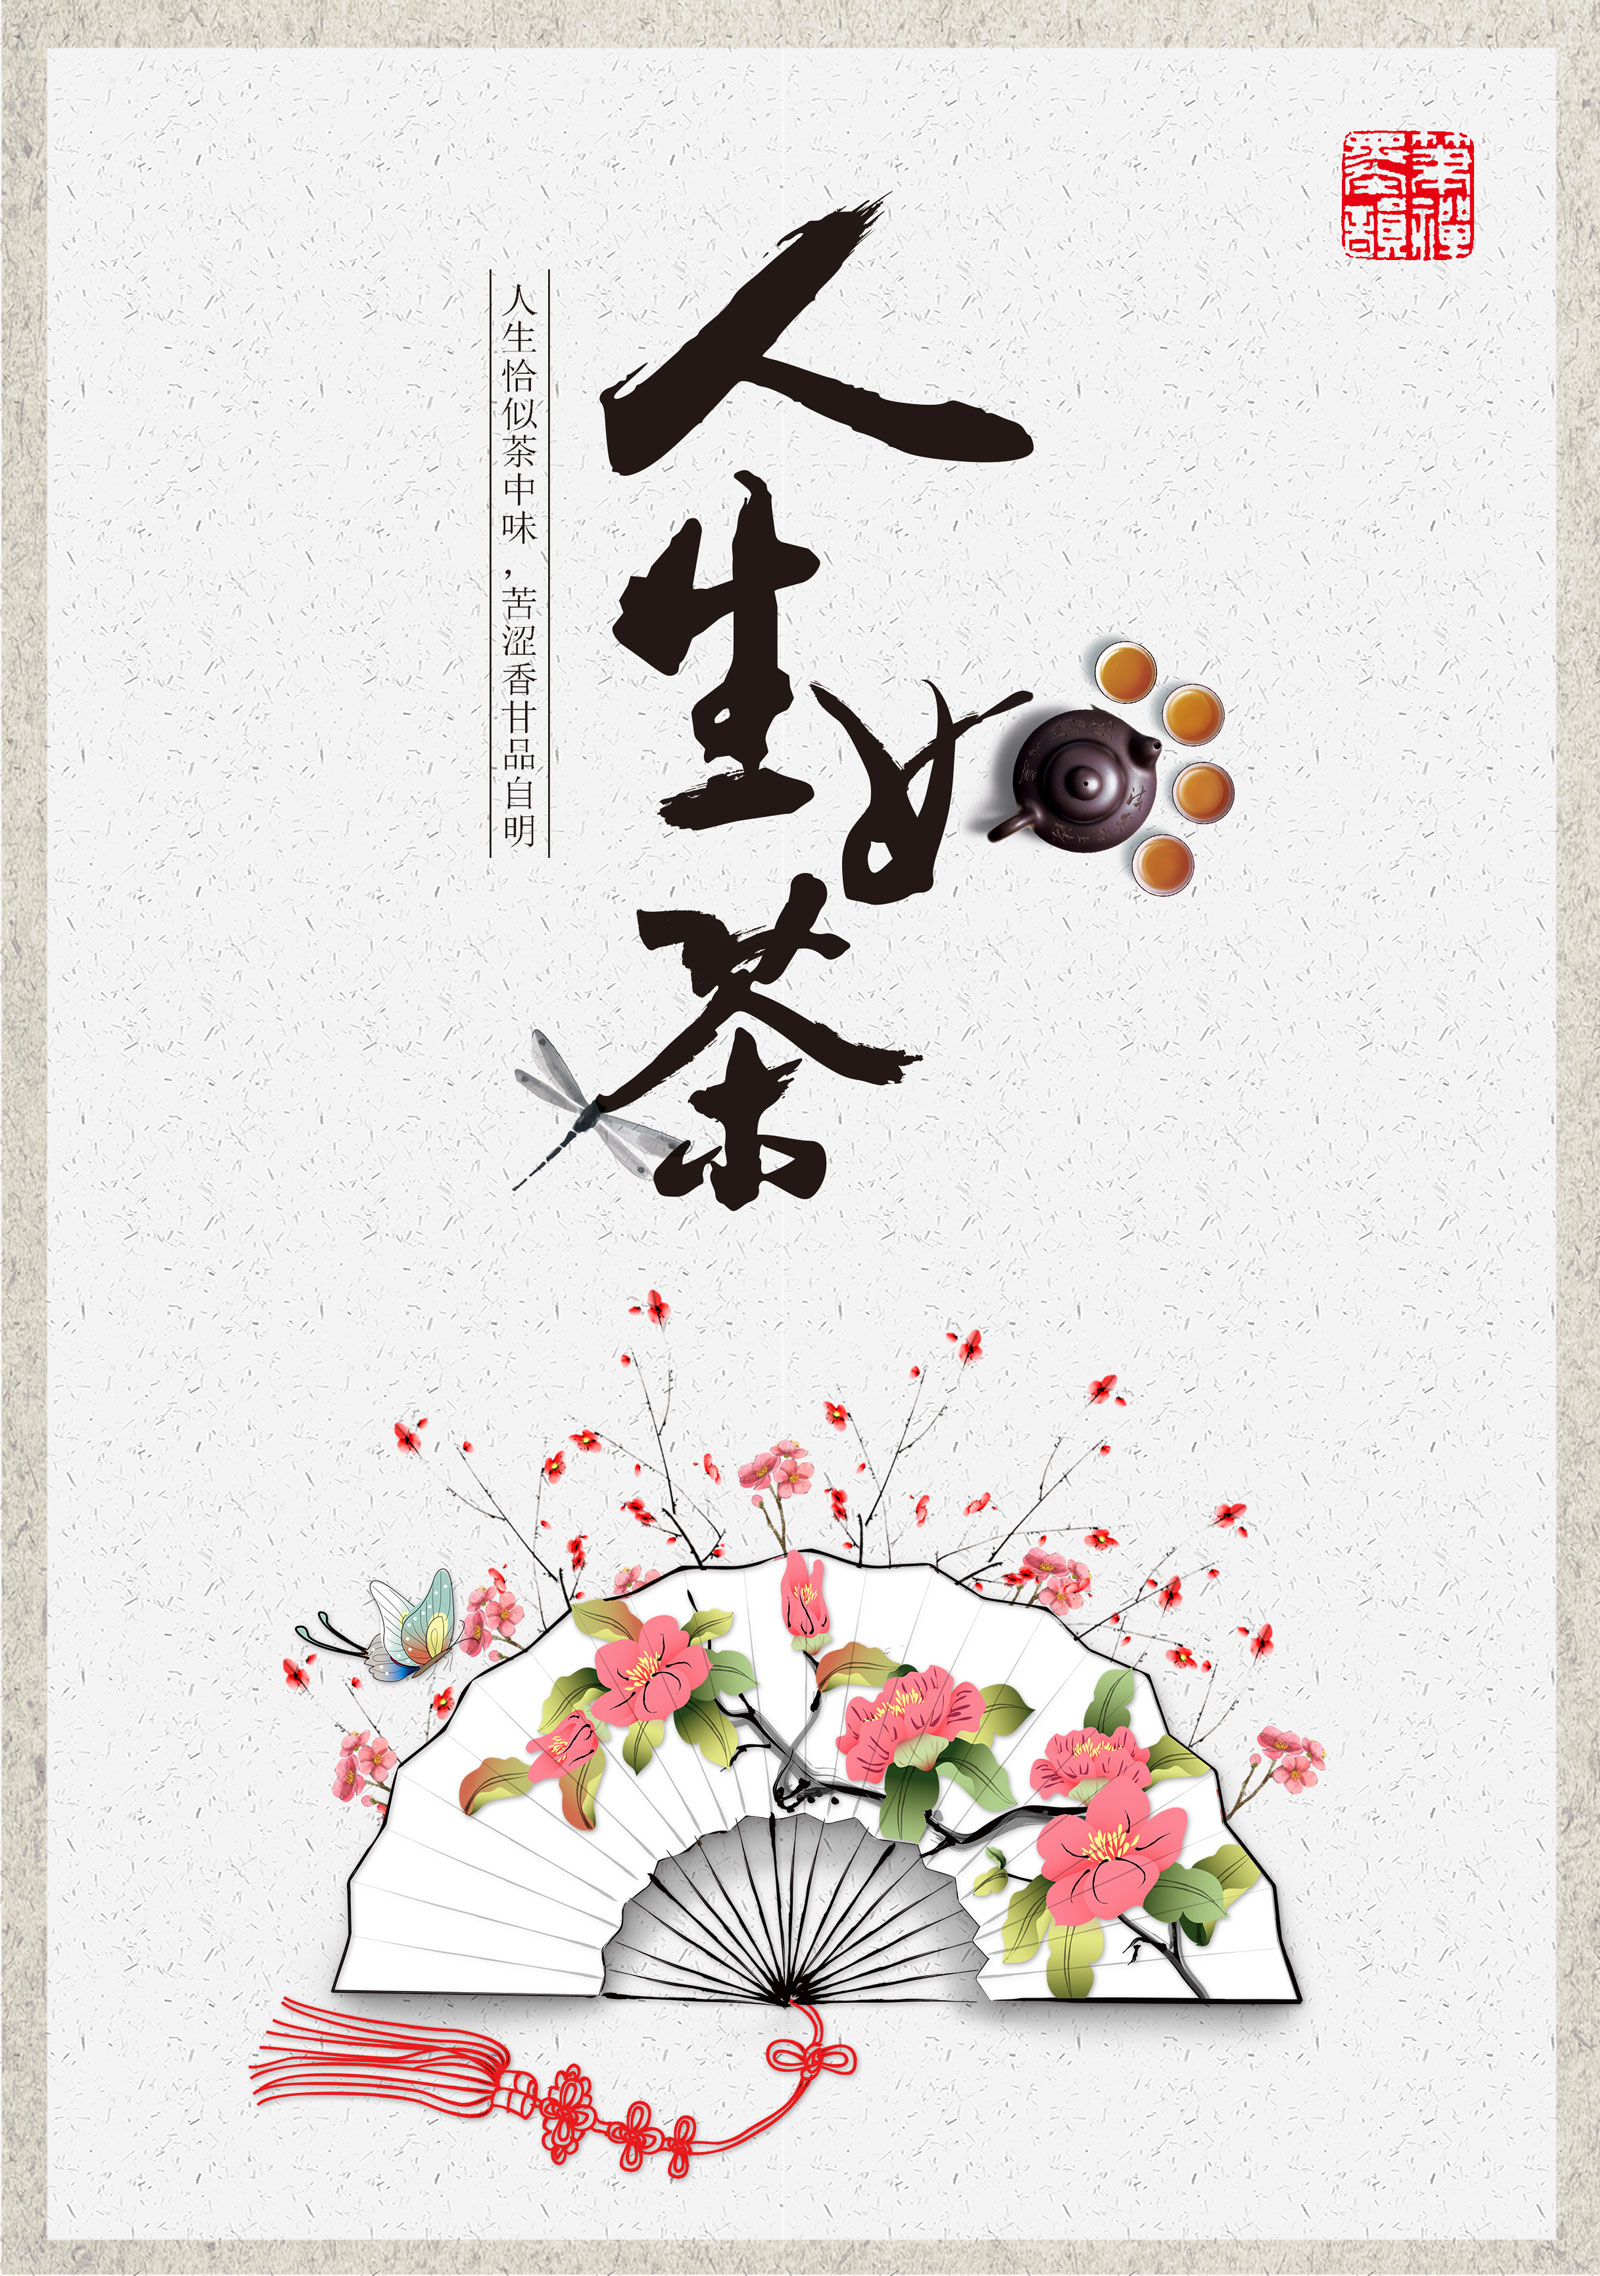 Tea culture posters psd - China PSD File Free Download